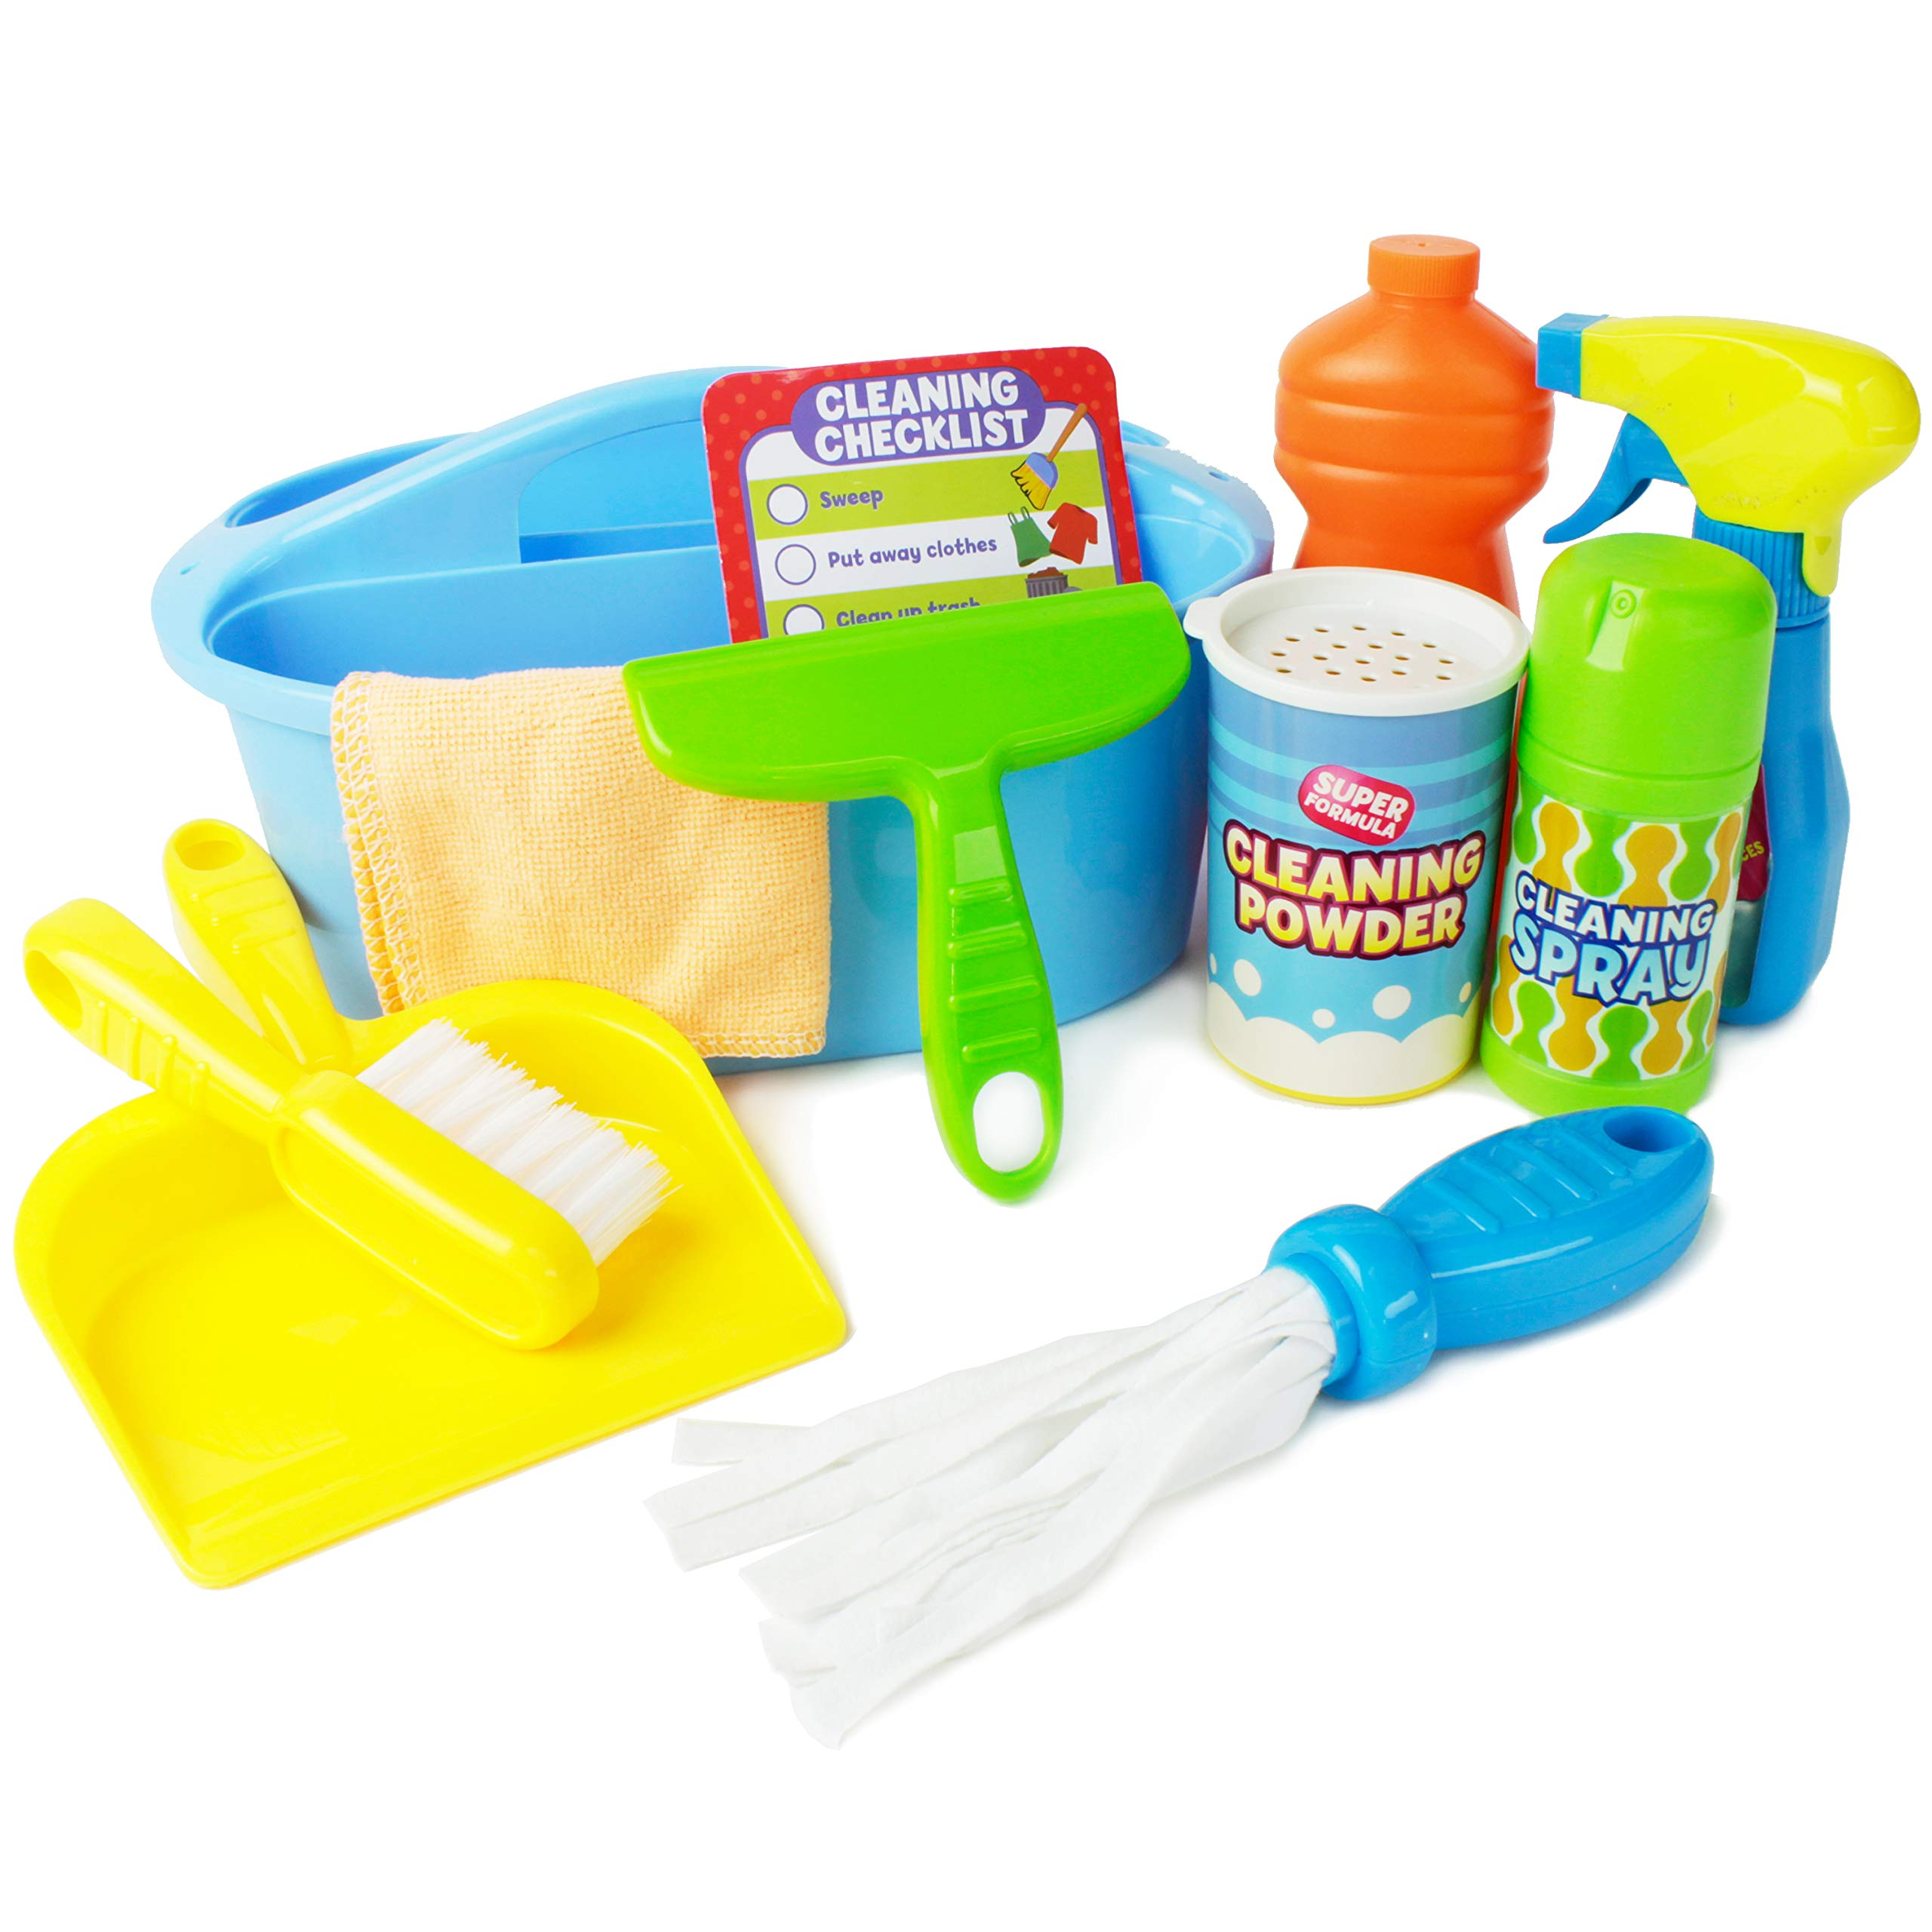 Boley Pretend Play Cleaner's Caddy - Cleaning Supplies Play Set for Toddler Education and Learning Development - Easy to Carry and Kid Friendly! by Boley